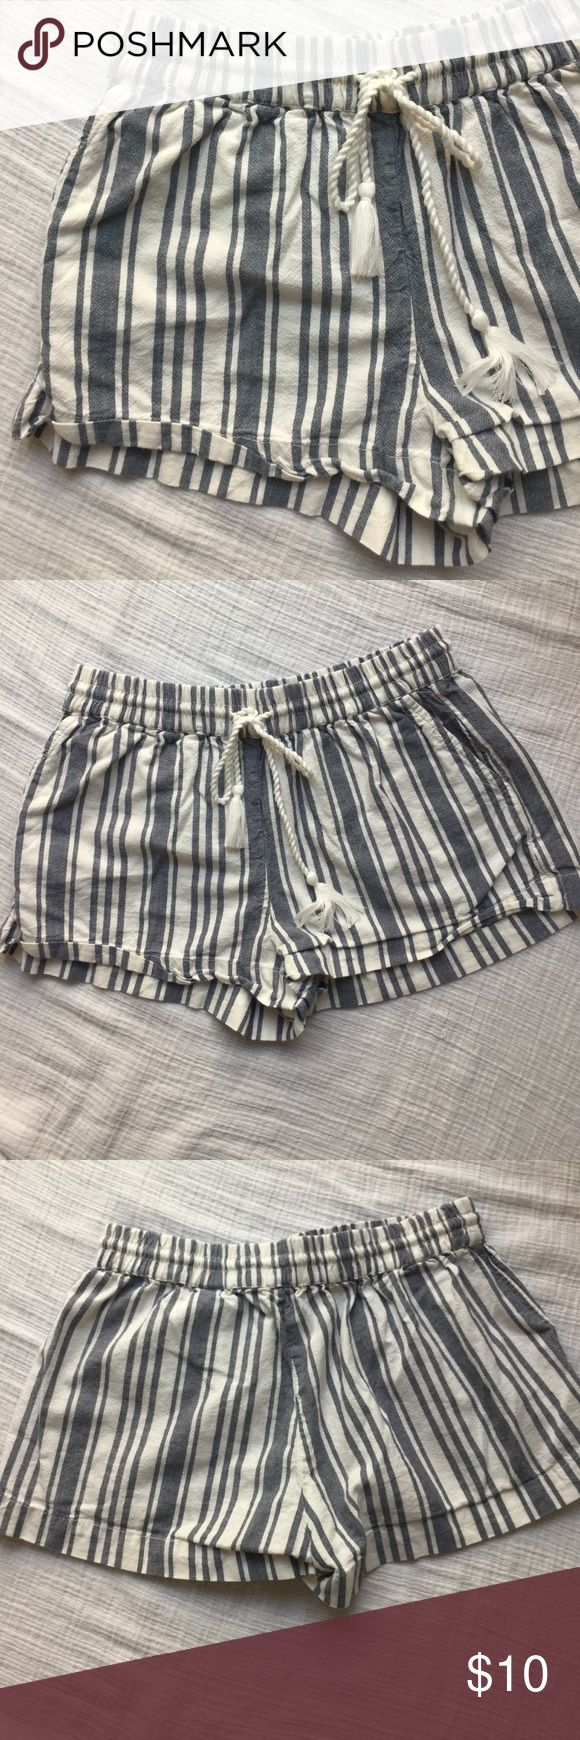 H&M Nautical Shorts Blue and white striped shorts H&M Shorts